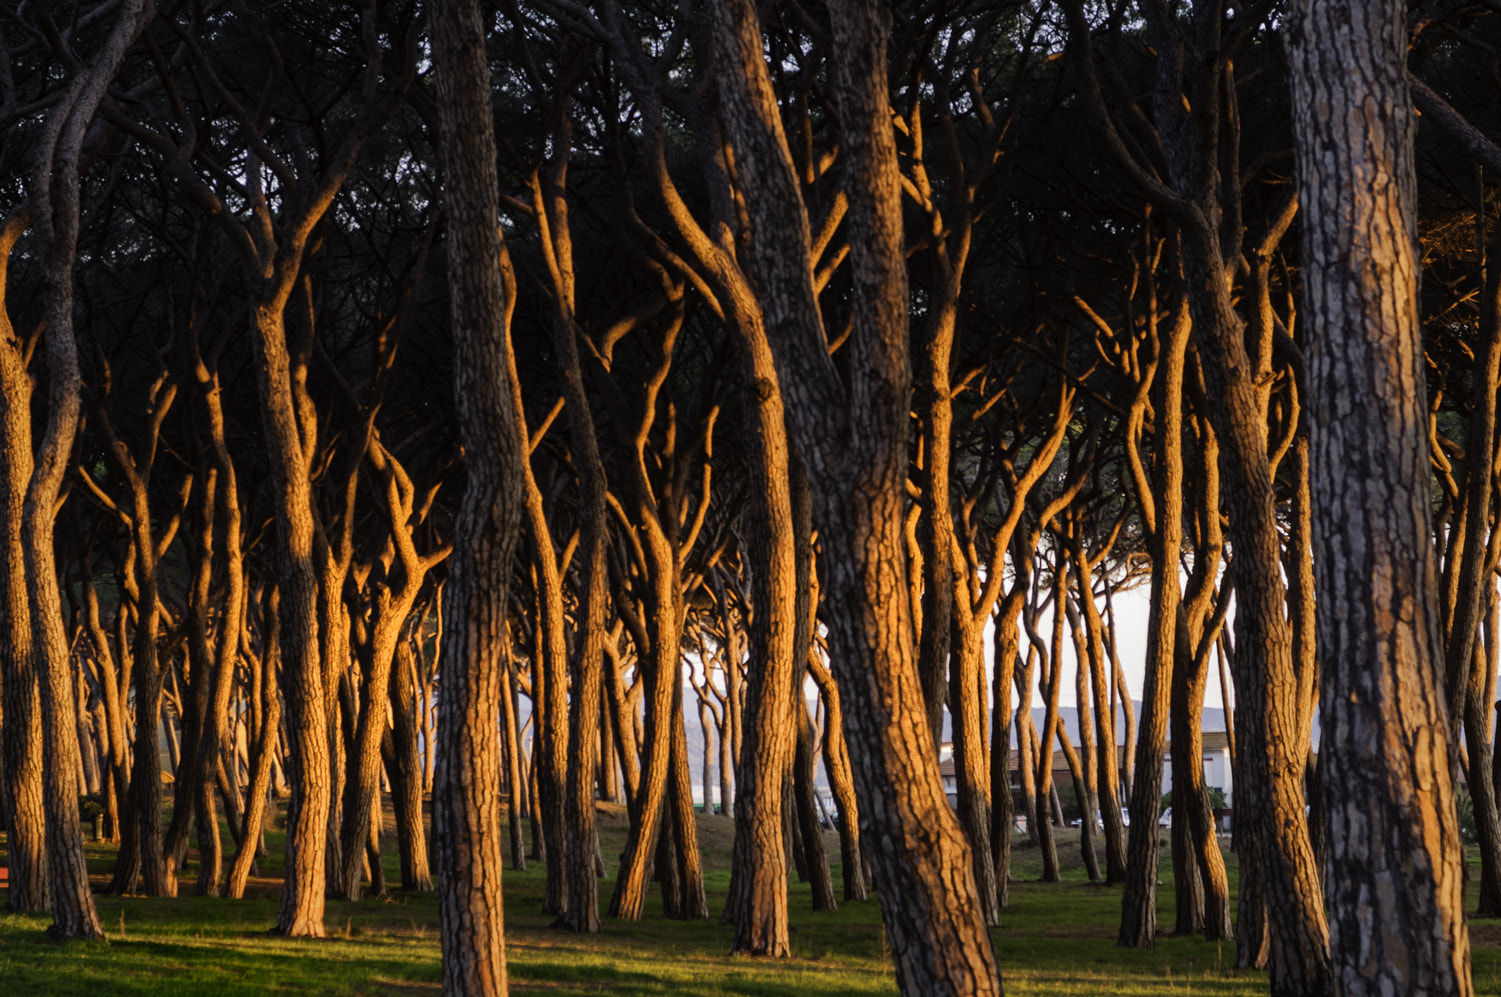 Photograph Light on the trees by Daniele Sangiorgio on 500px